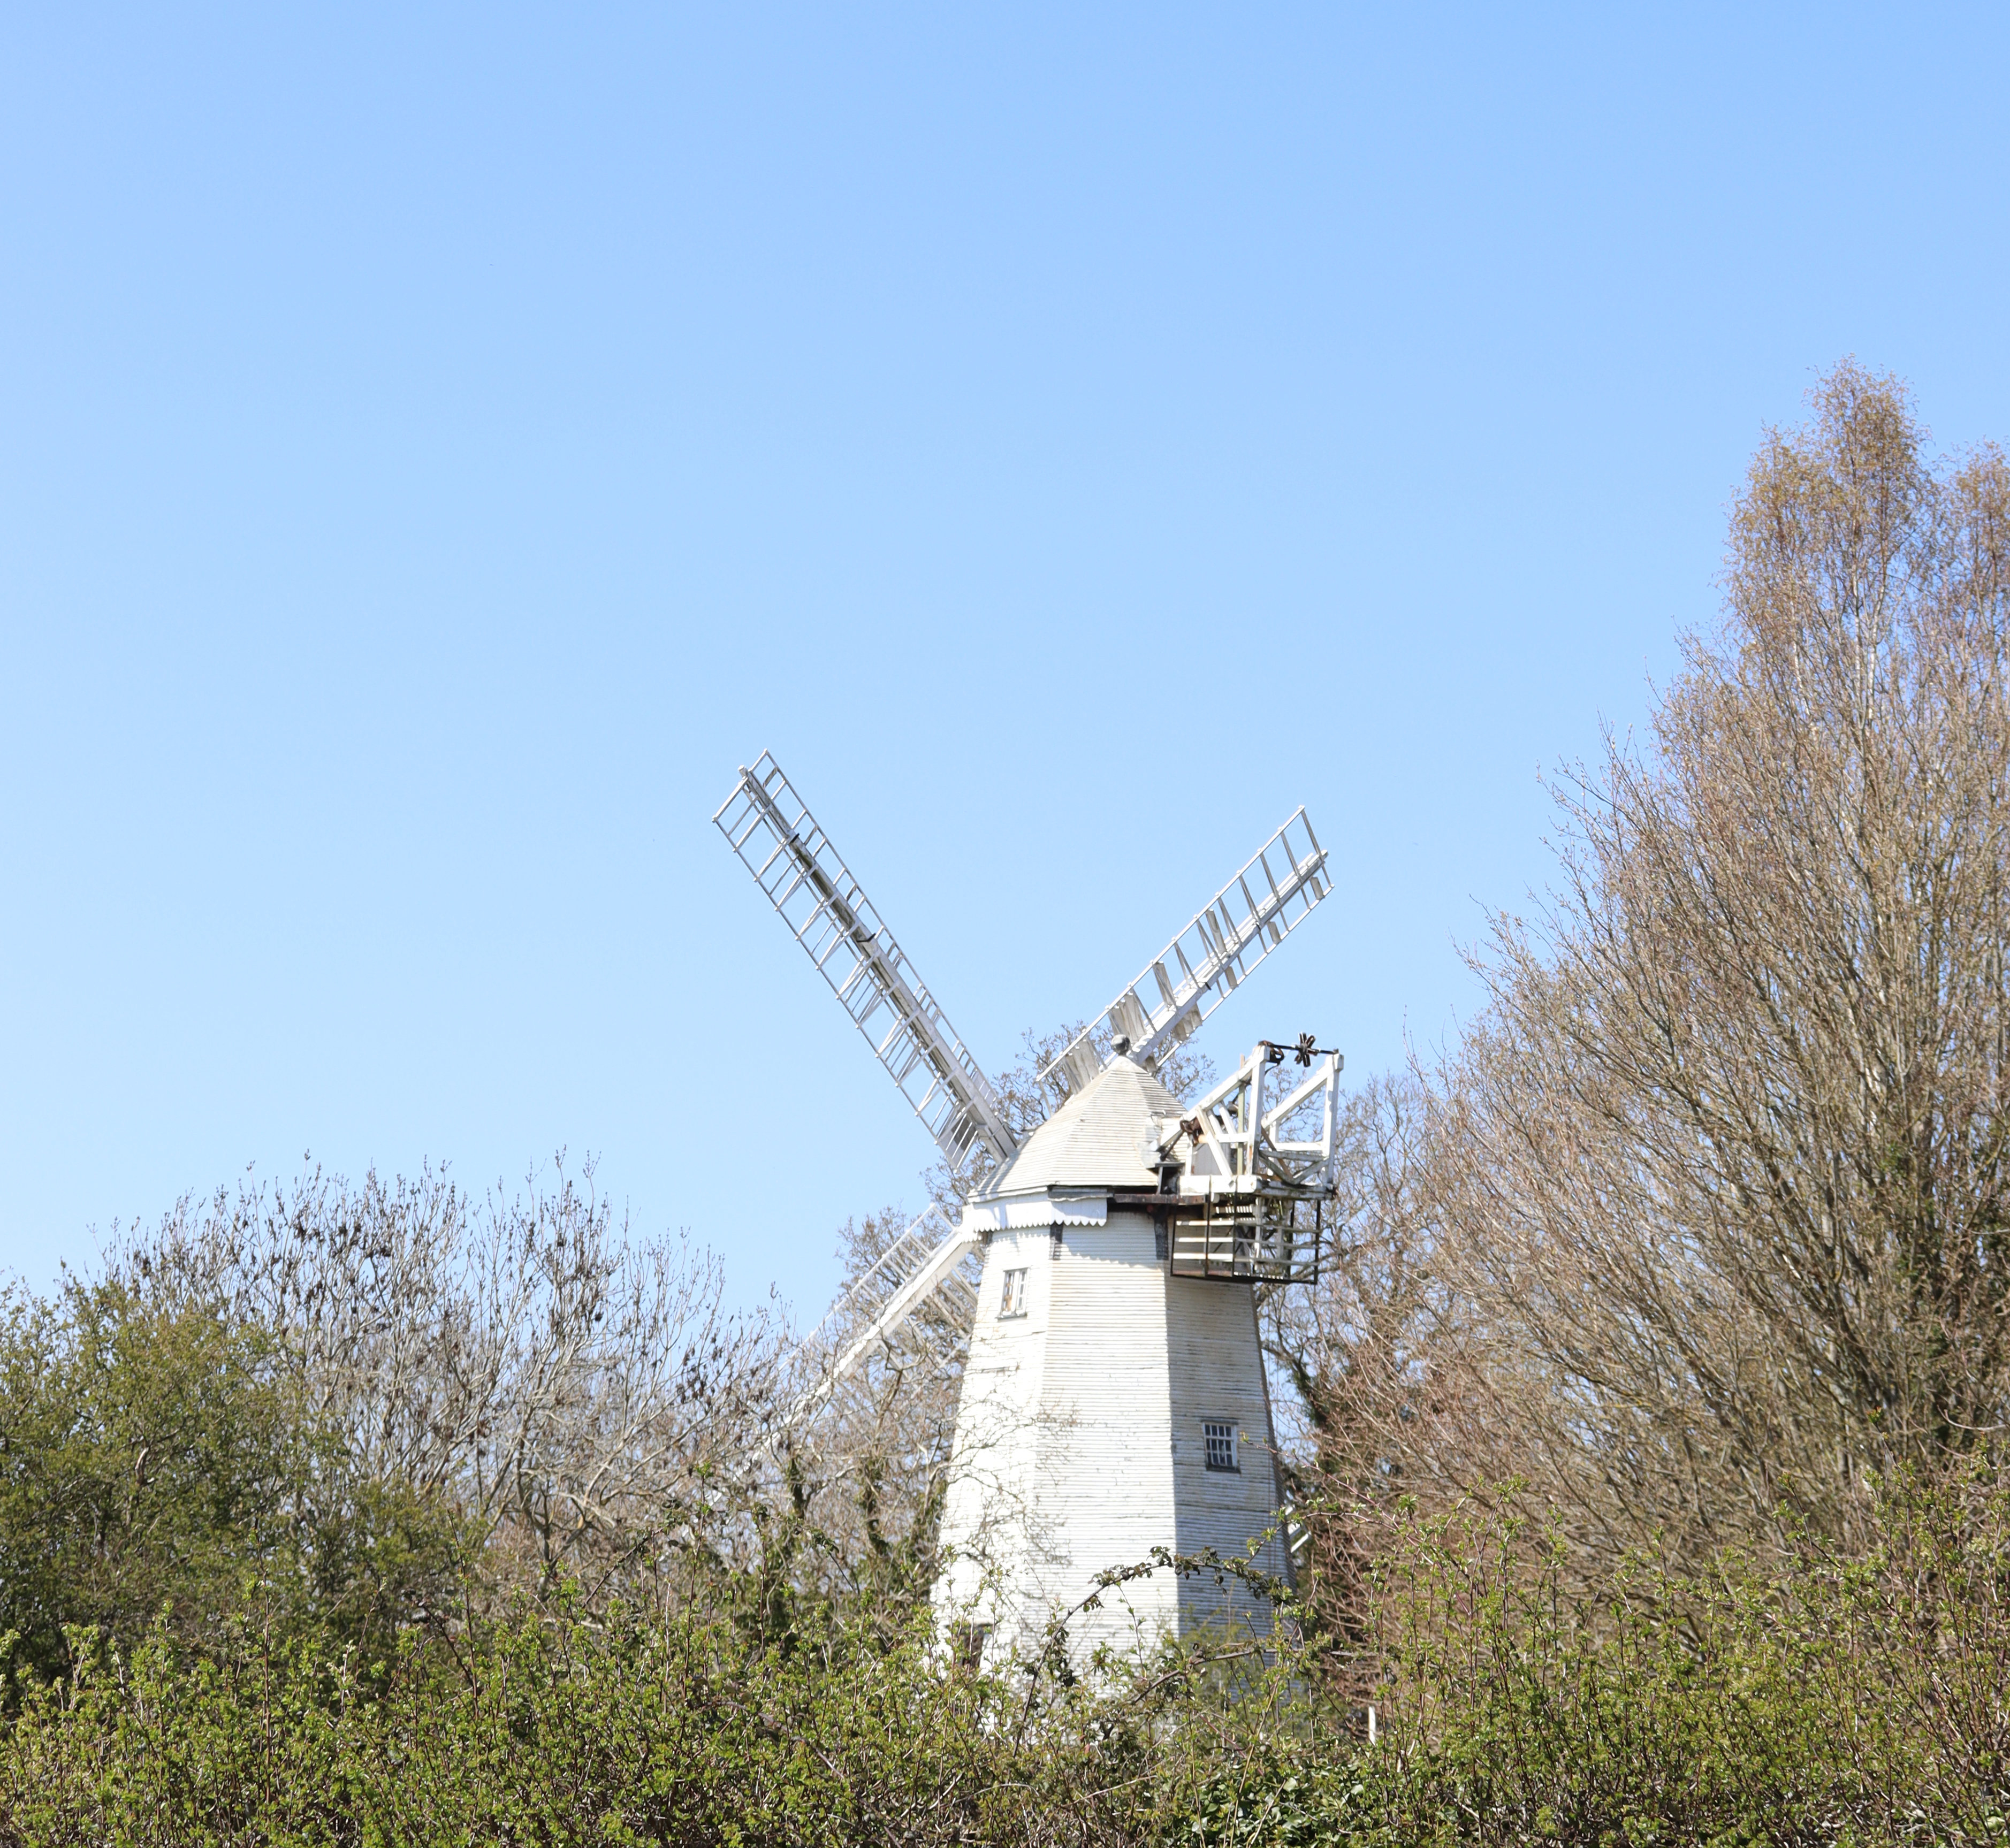 A white windmill behind some green bushes and blue skies.